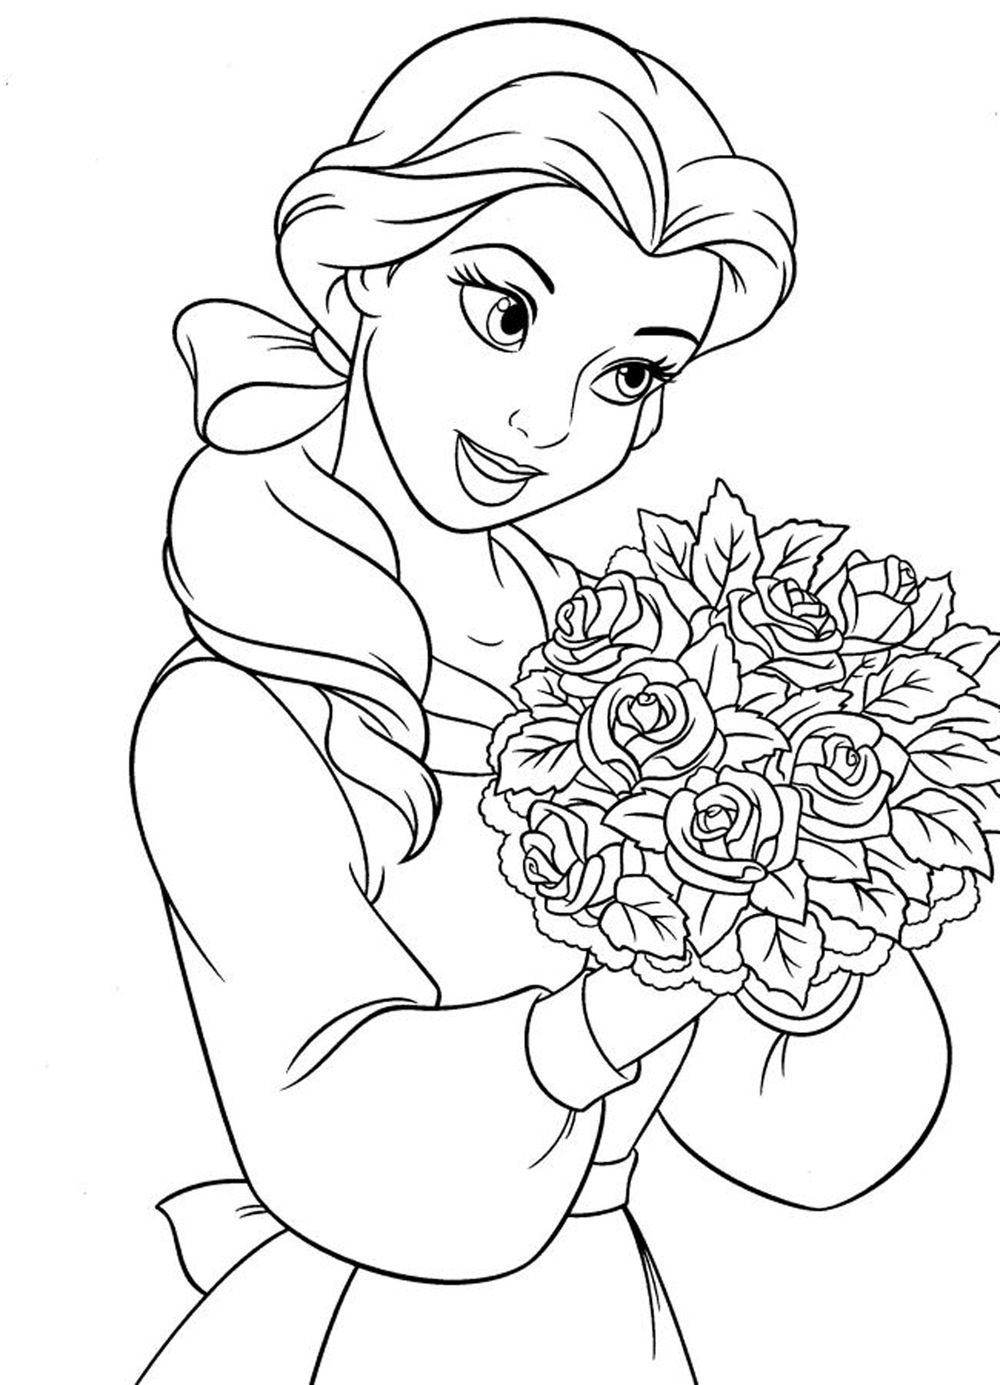 girls colouring pictures best free printable coloring pages for kids and teens girls pictures colouring